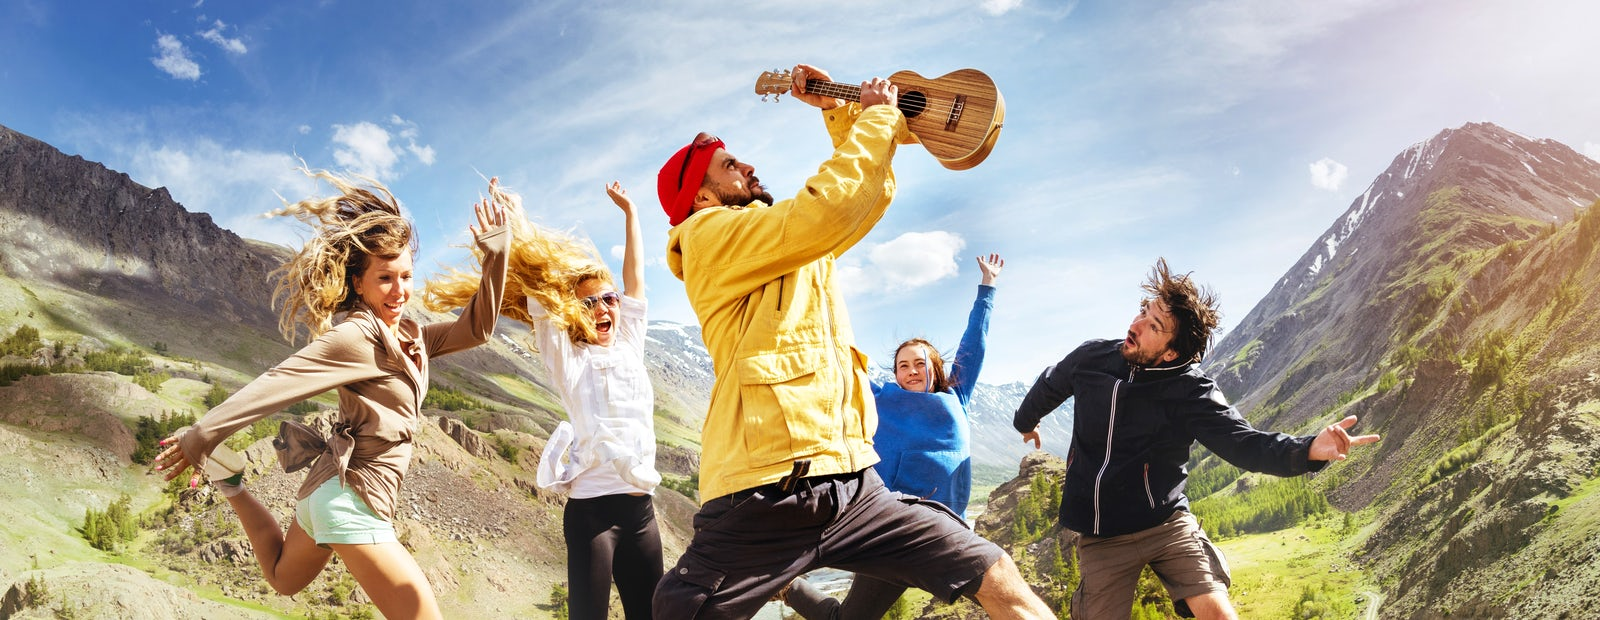 Cover photo © Credits to iStock/molchanovdmitry